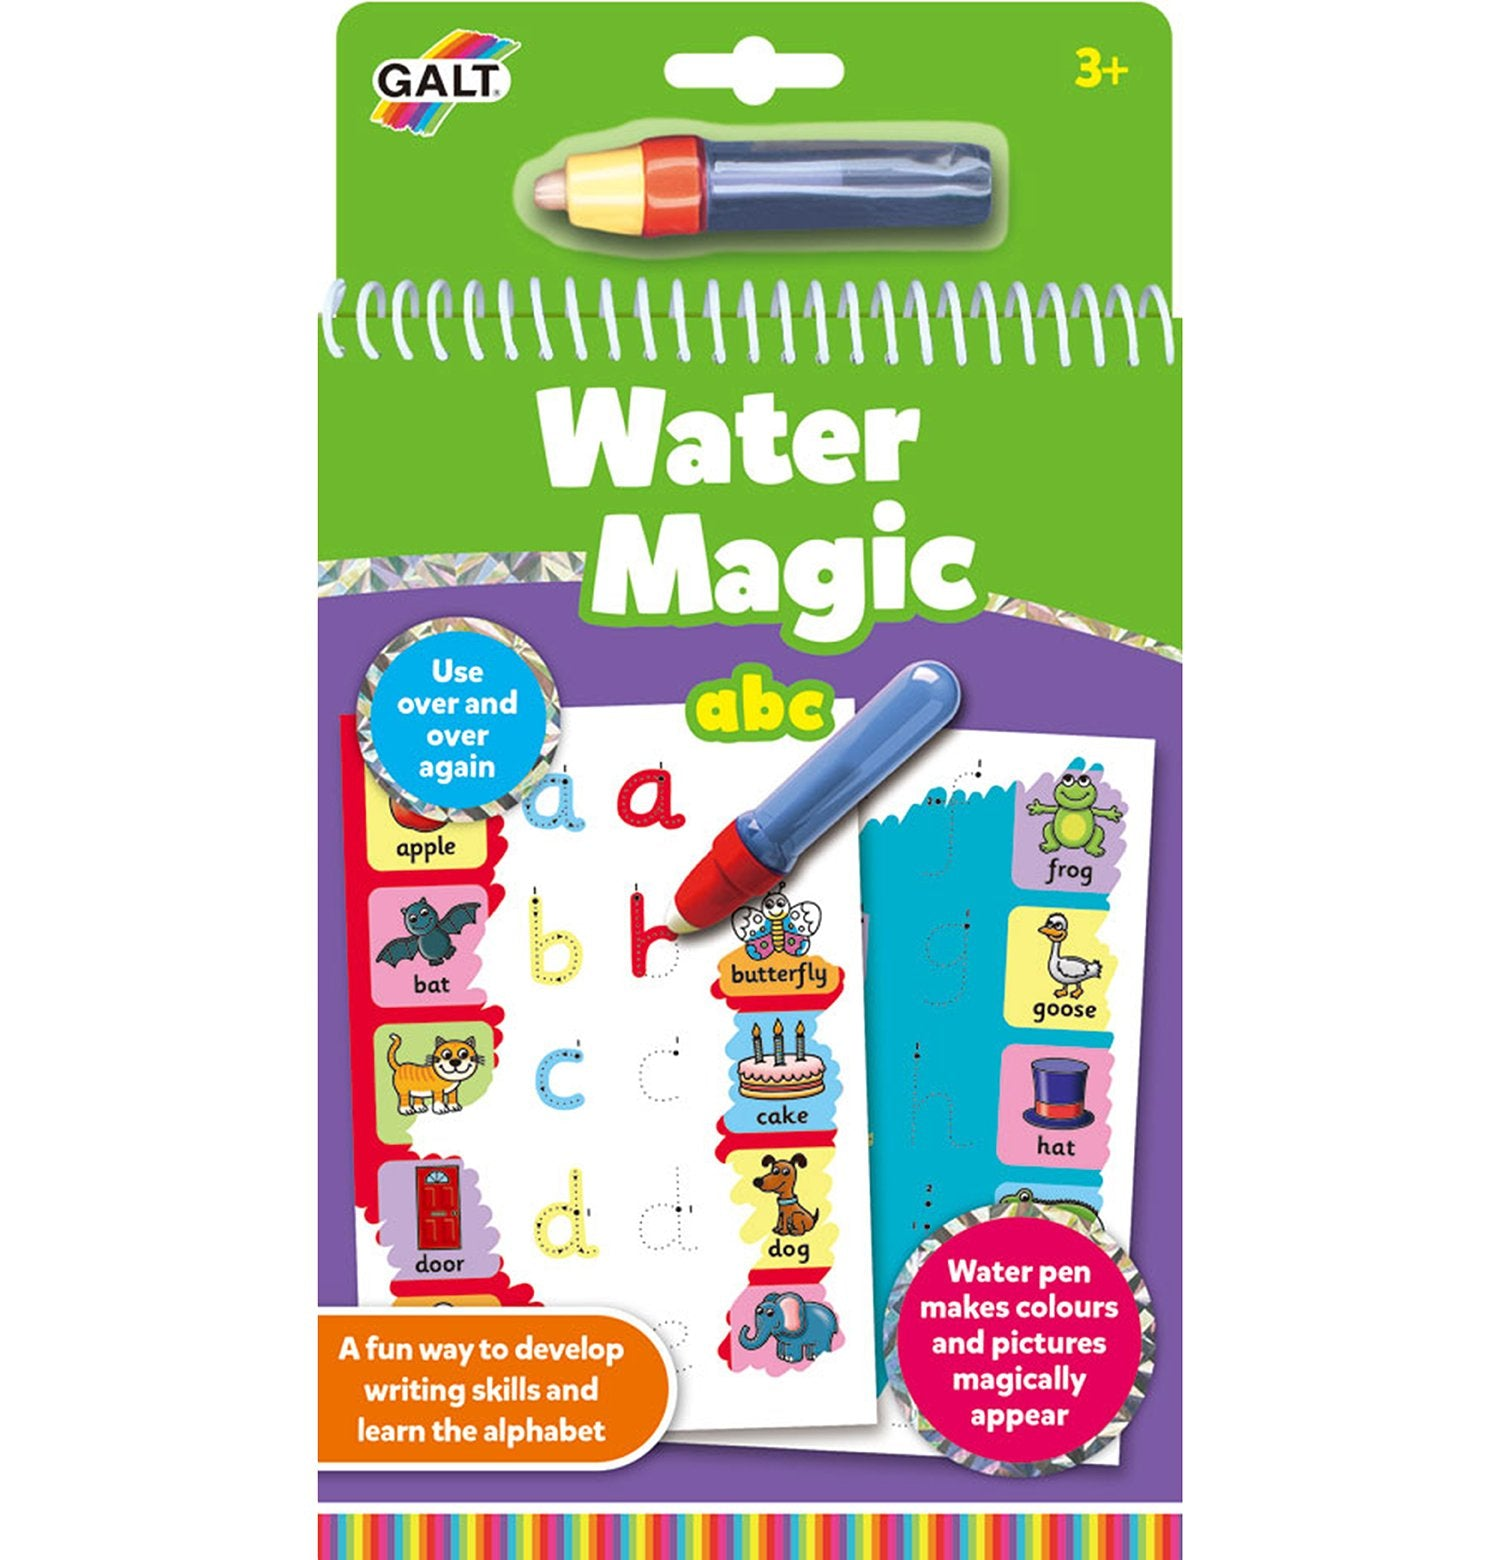 Water Magic - abc - Galt